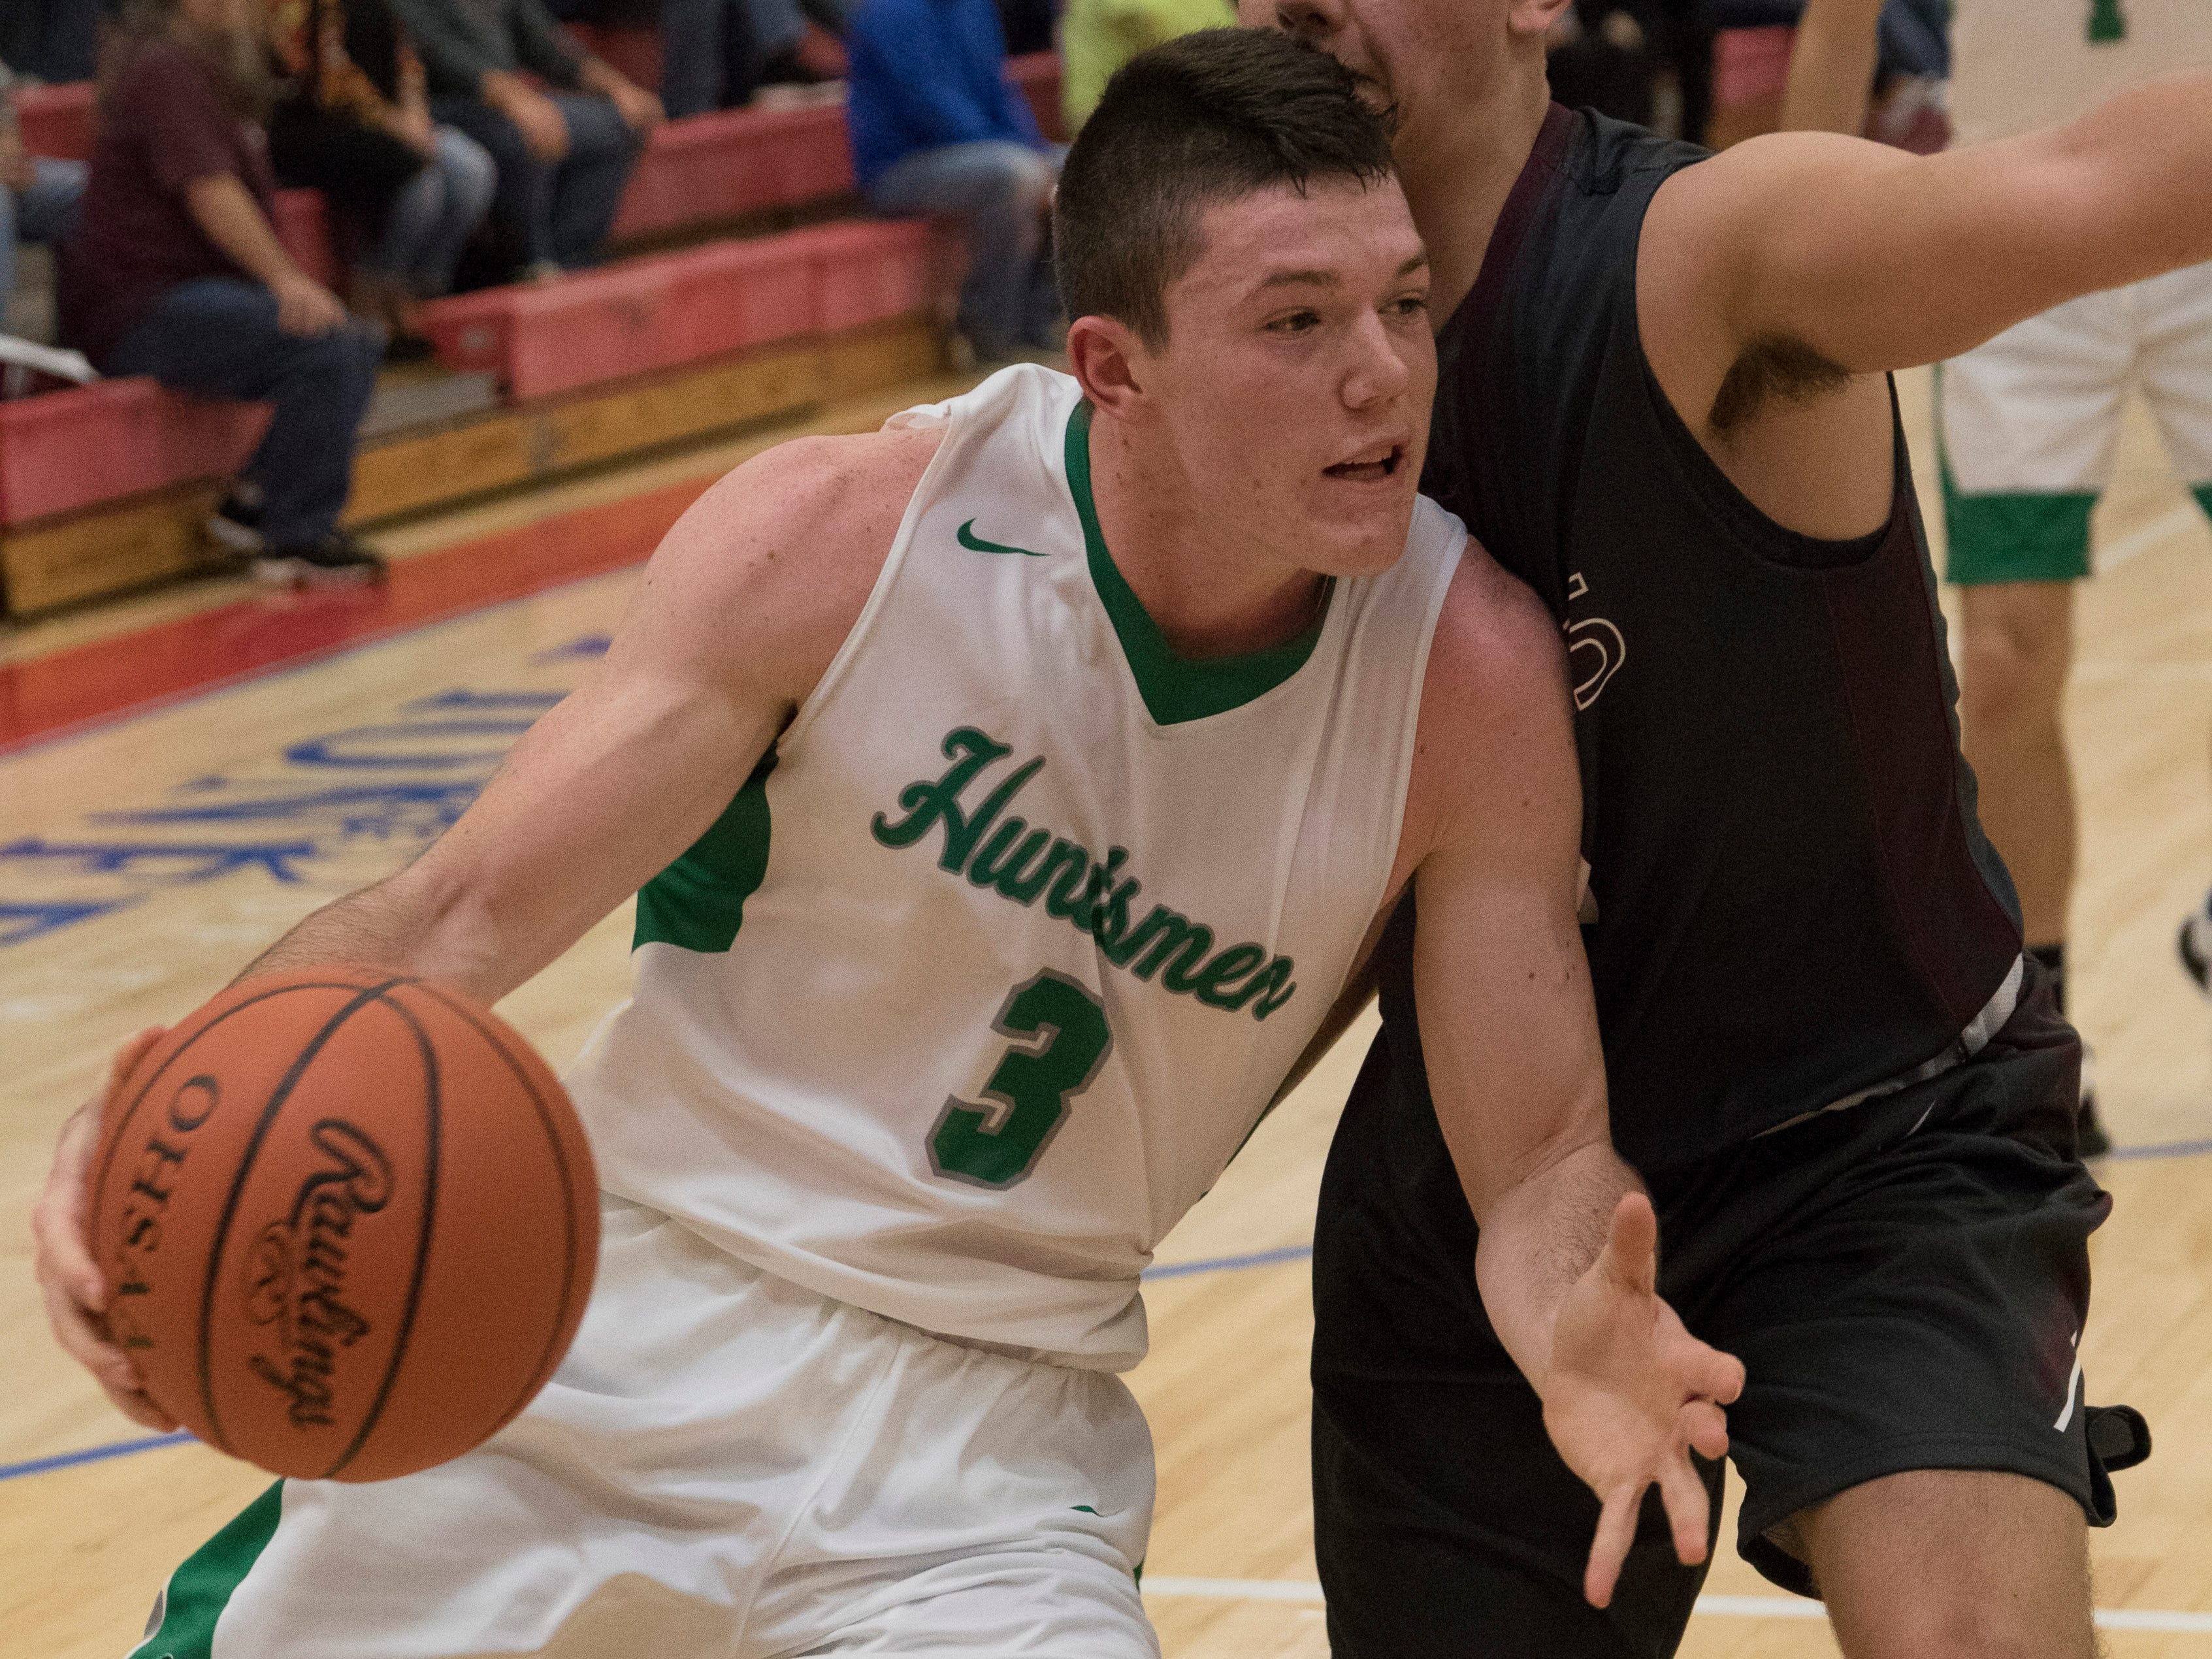 Vinton County defeated Huntington High School 58-35 during the Zane Trace Tip-Off Classic at Zane Trace High School on Saturday, December 1, 2018.